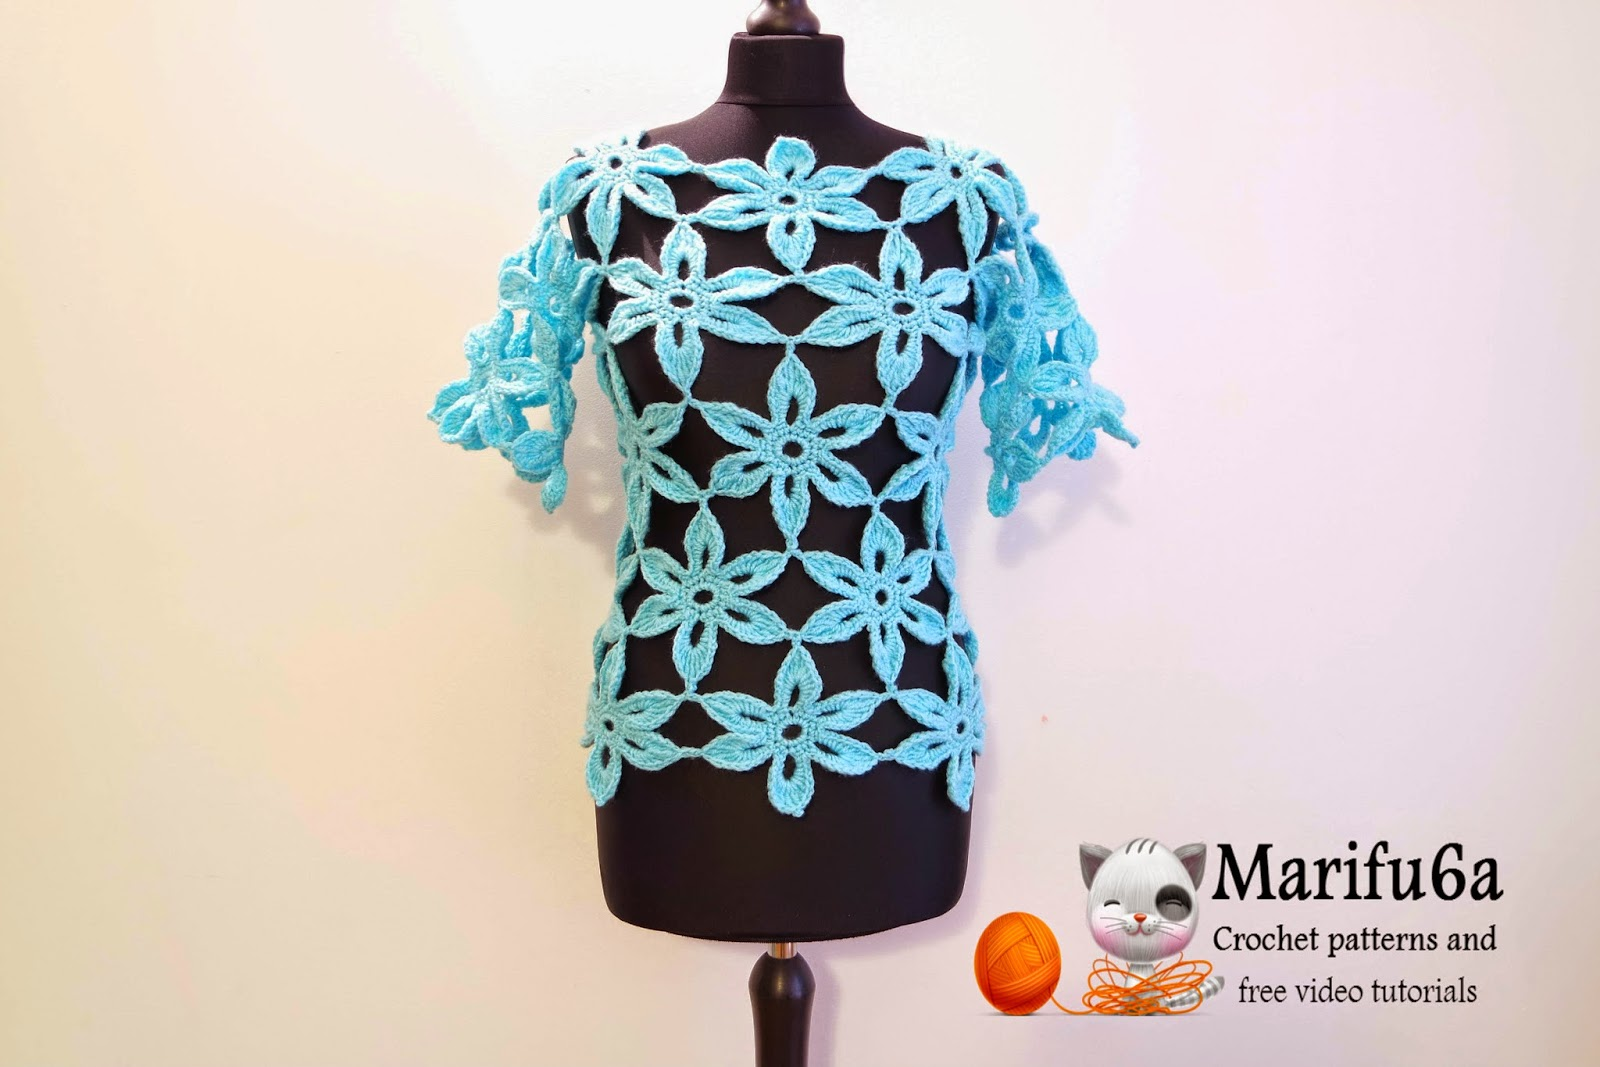 Free crochet patterns and video tutorials: How to crochet flower ...